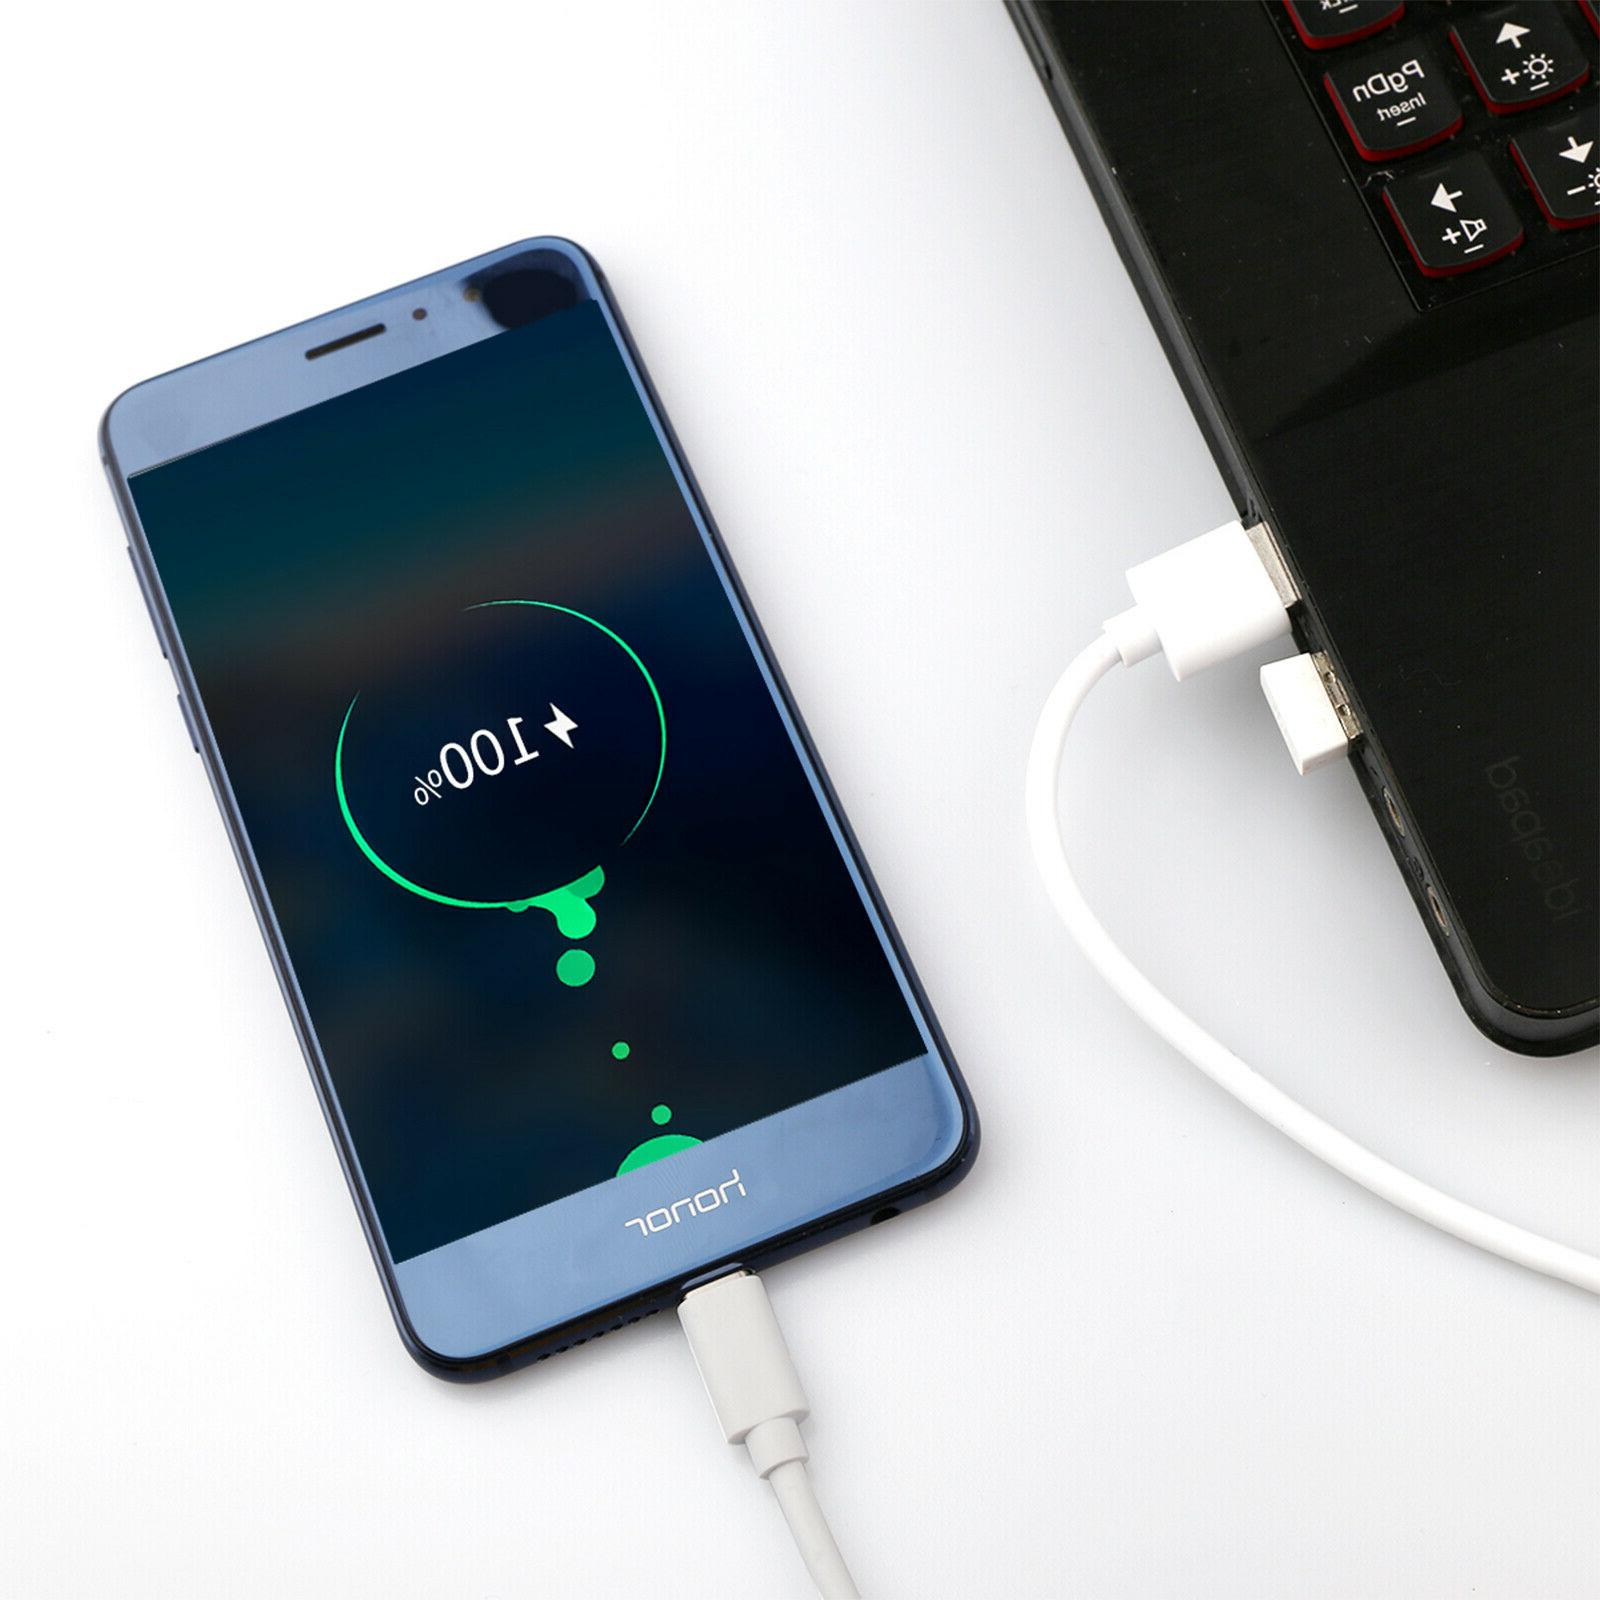 FAST USB Charger for S8 S10 Plus Note 9